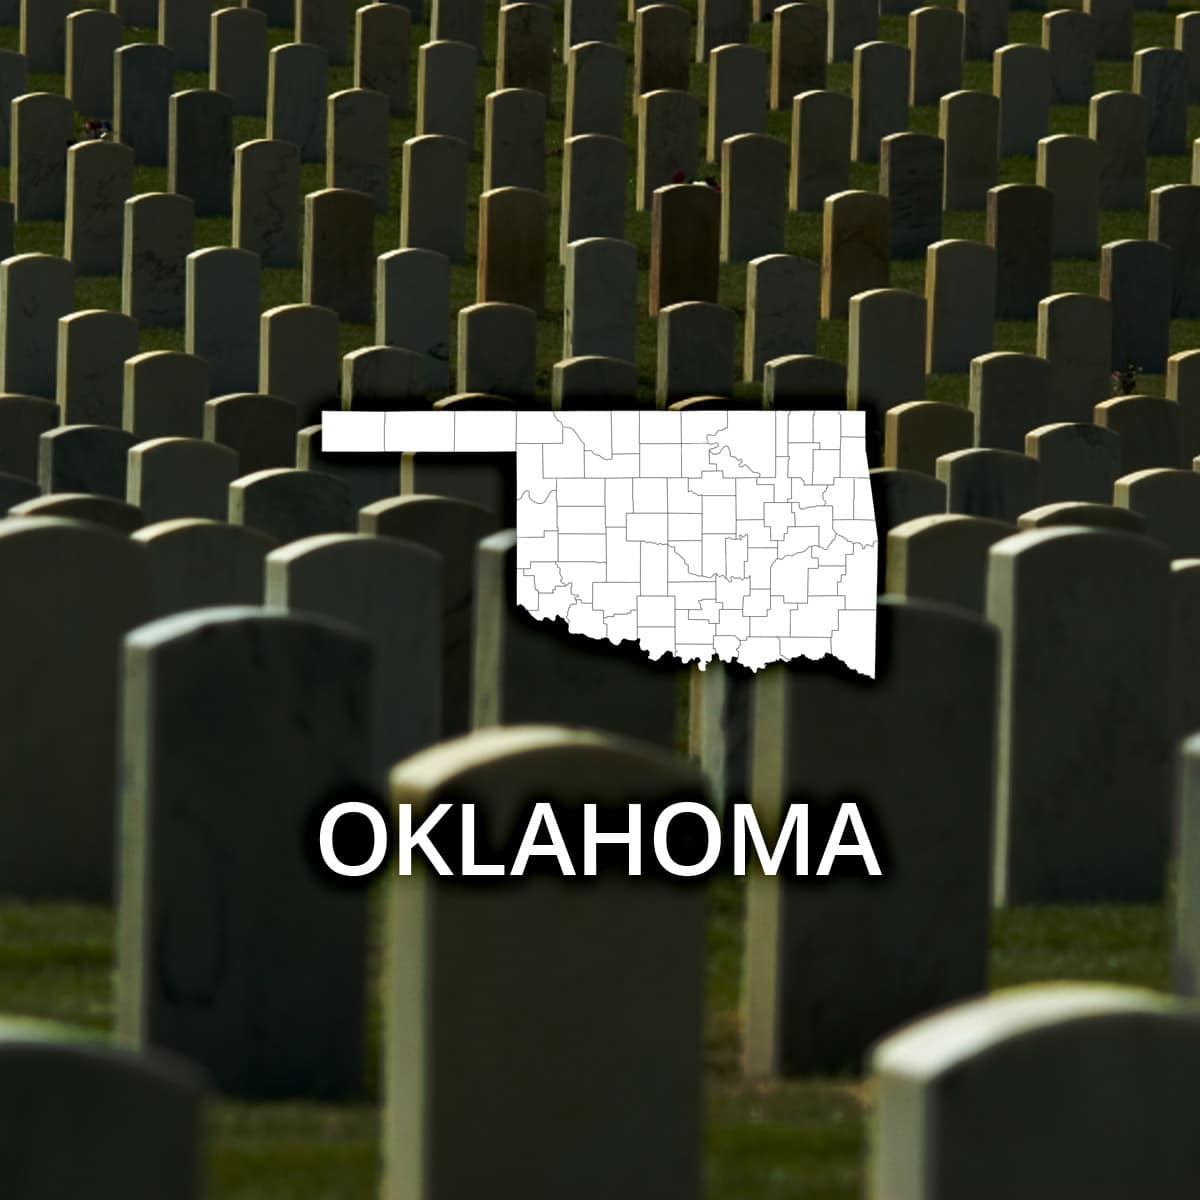 Where to Obtain an Oklahoma Death Certificate